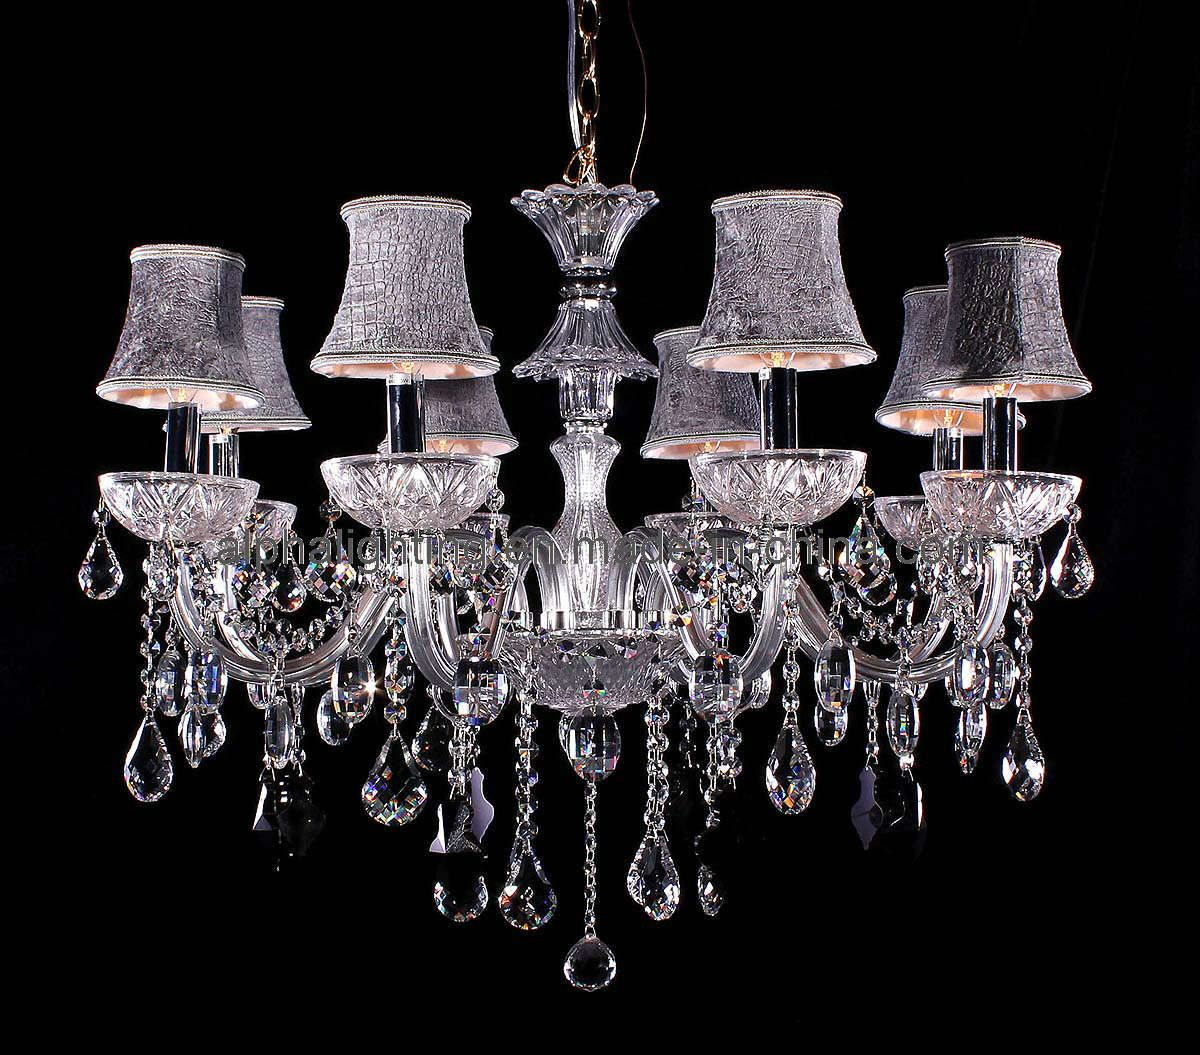 17 Best images about Home: Lovely Lighting on Pinterest   Modern ...:17 Best images about Home: Lovely Lighting on Pinterest   Modern crystal  chandeliers, Oil lamps and Brass chandelier,Lighting